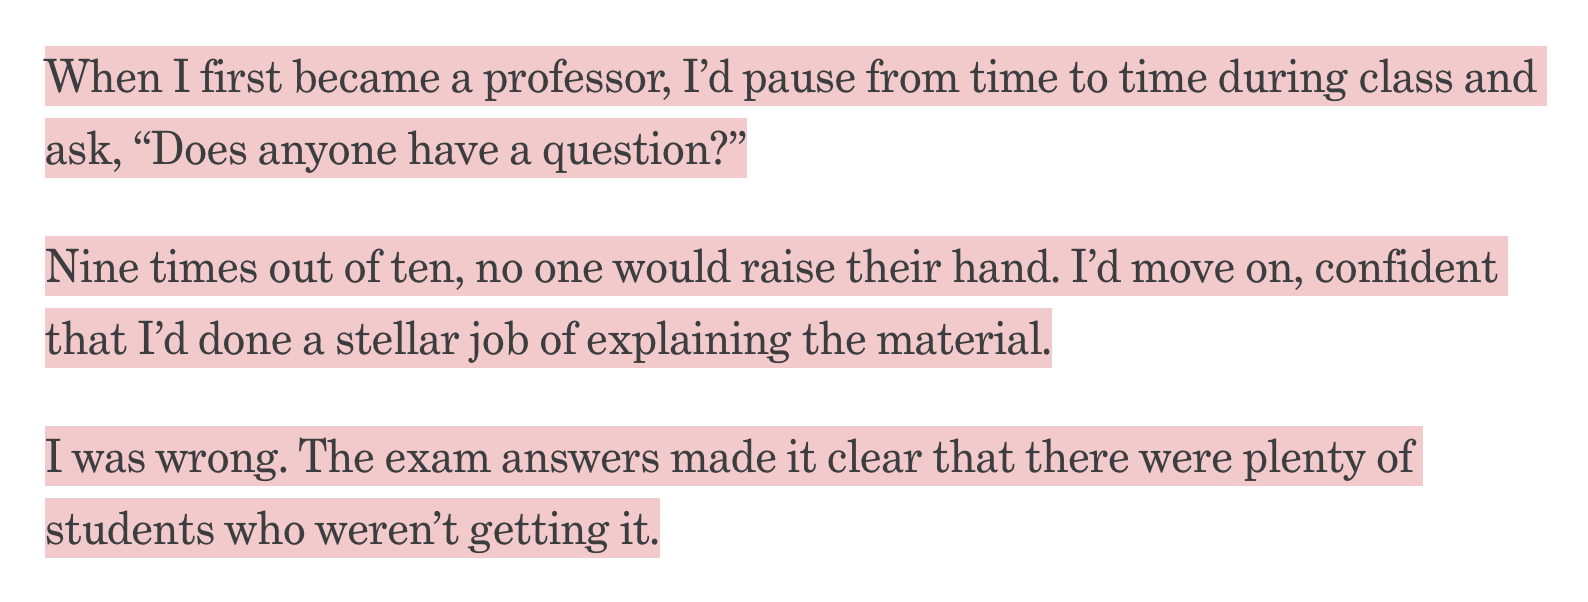 """When I first became a professor, I'd pause from time to time during class and ask, """"Does anyone have a question?""""  Nine times out of ten, no one would raise their hand. I'd move on, confident that I'd done a stellar job of explaining the material.  I was wrong. The exam answers made it clear that there were plenty of students who weren't getting it."""